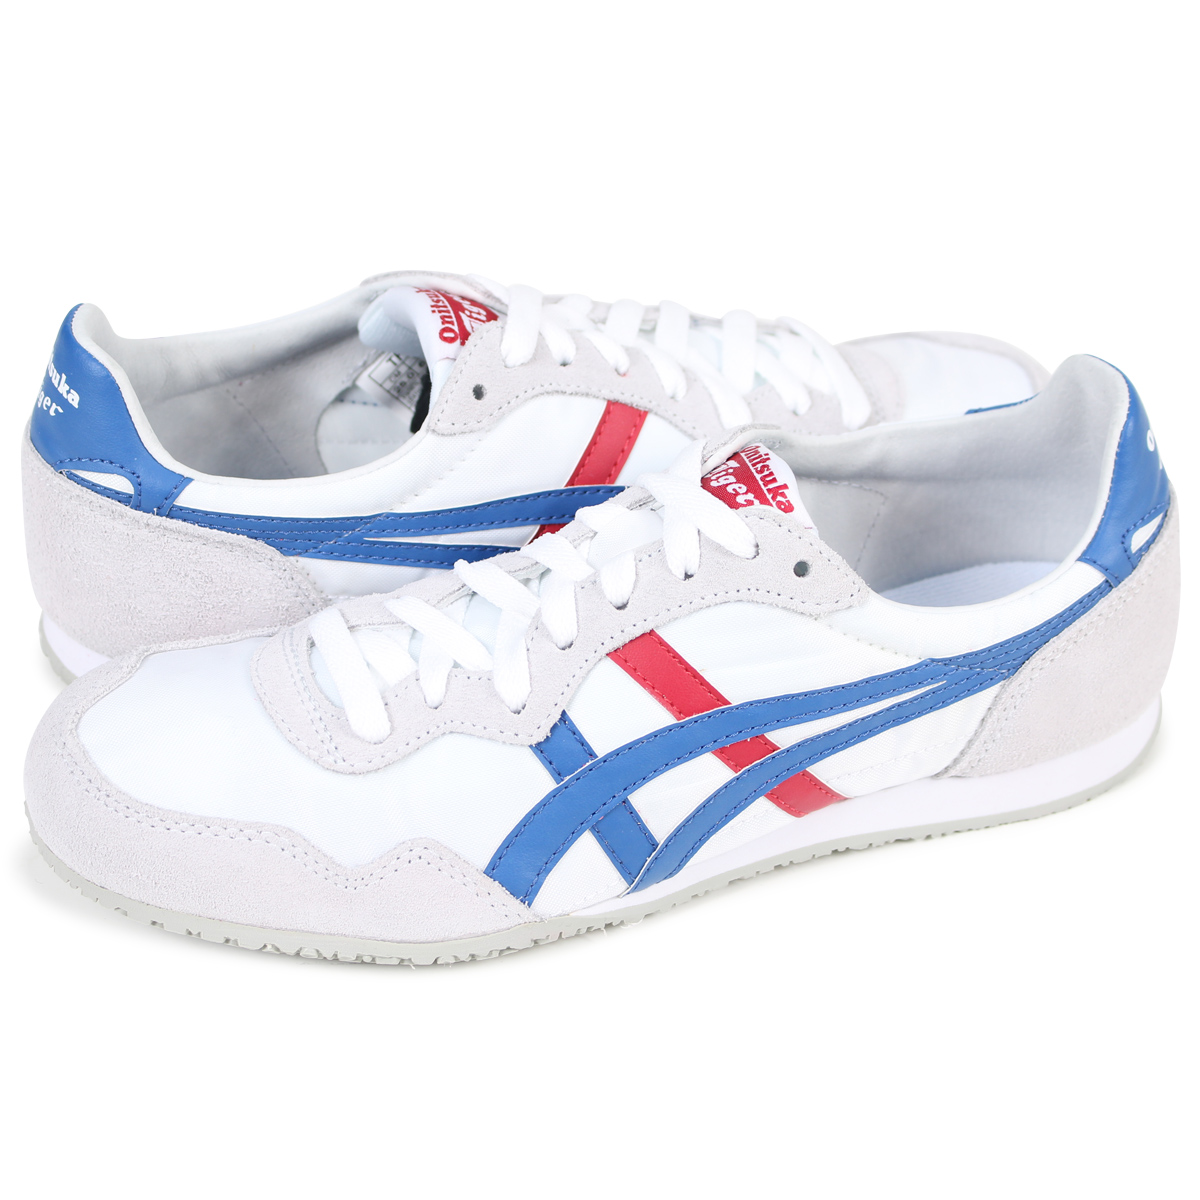 372f2c603edf  SOLD OUT  Onitsuka Tiger asics ONITSUKA Tiger ASICs Serrano sneakers  SERRANO TH 109L-0142 men s women s shoes white